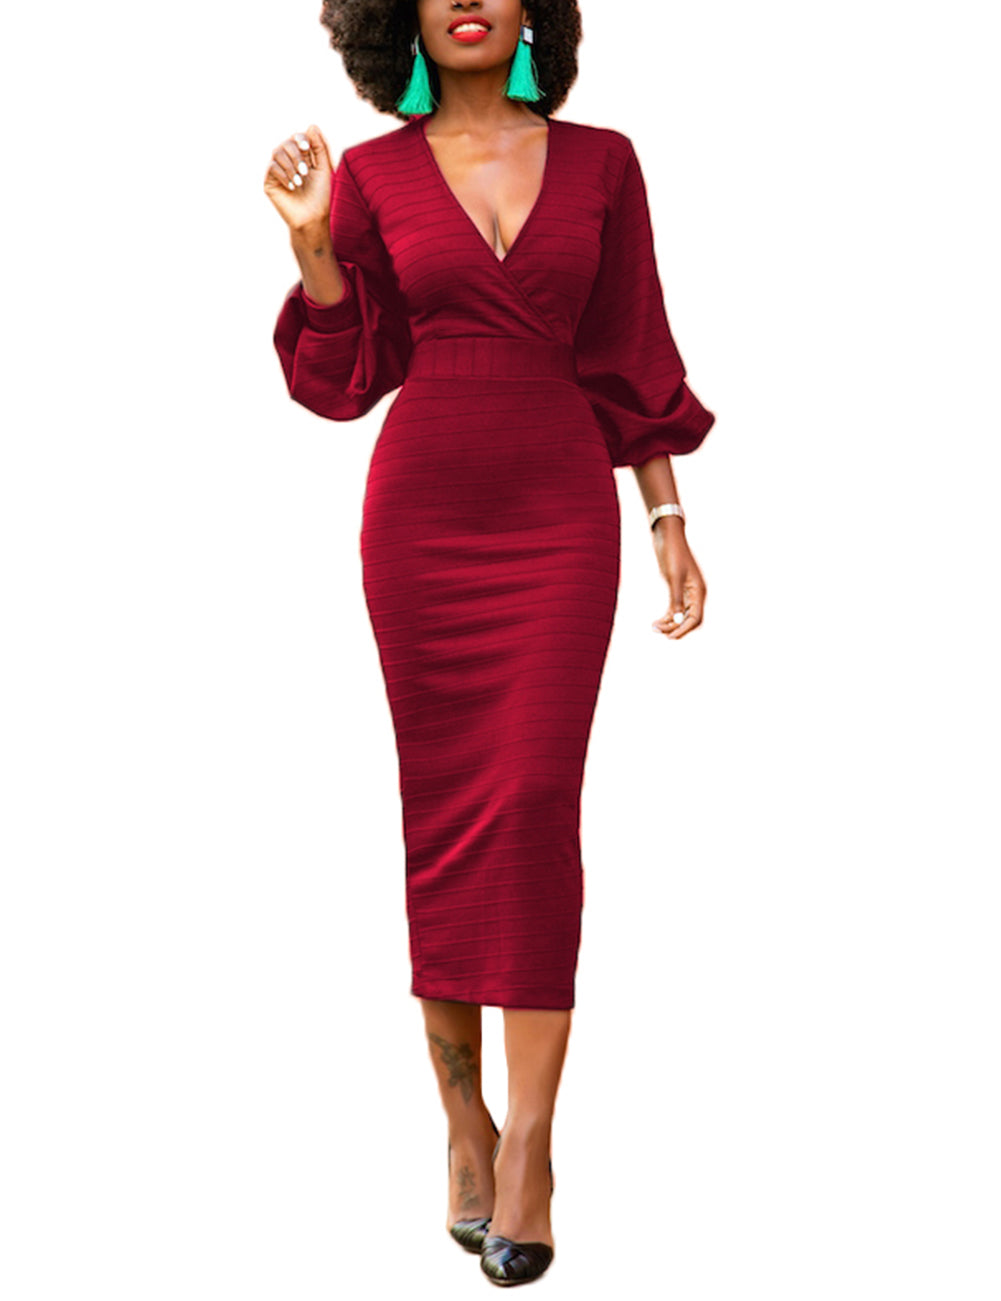 Catching Wine Red Puff Sleeve V-Neckline Sheath Dress Zipper Back